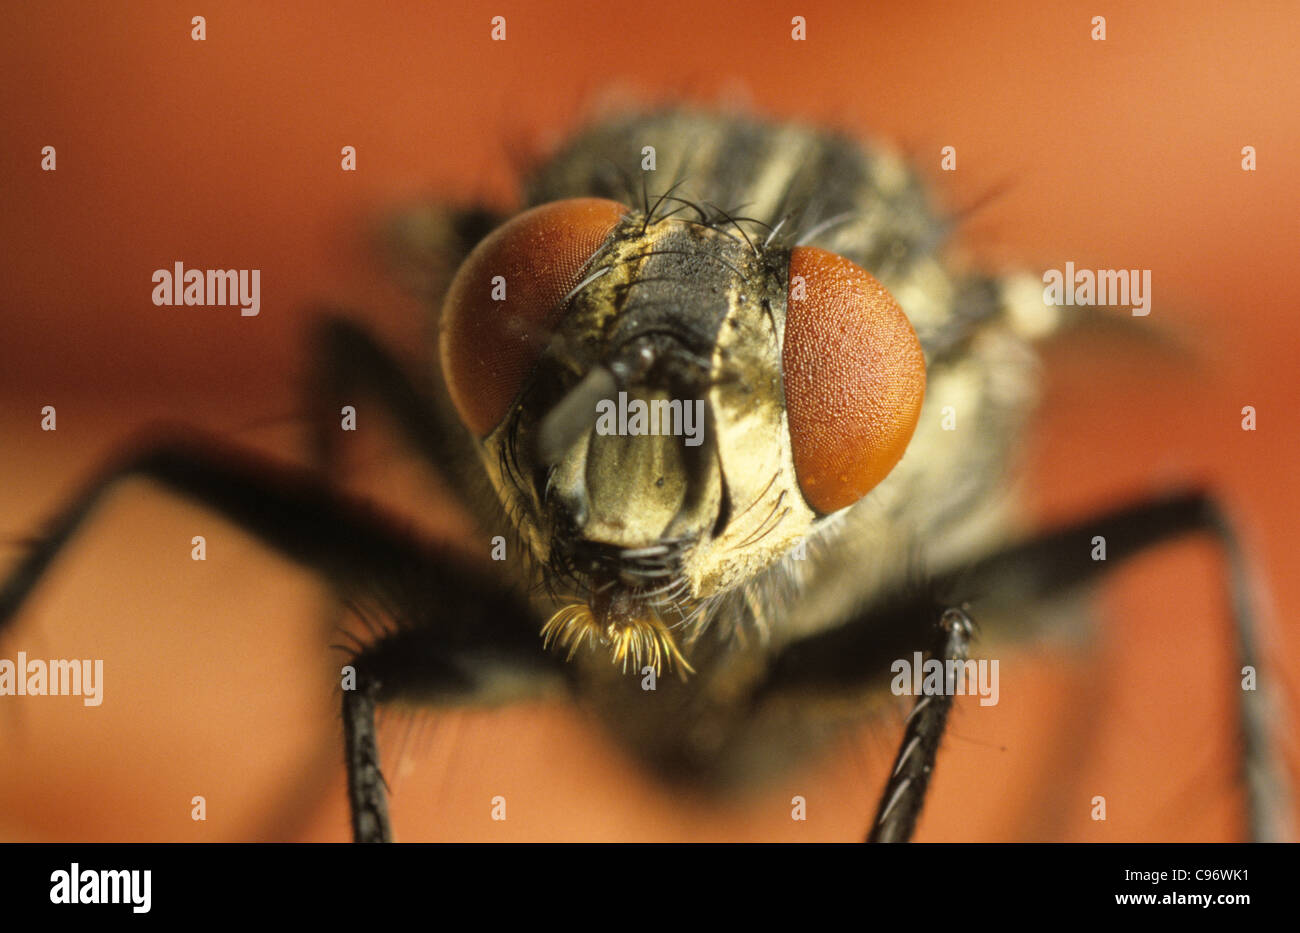 Head of a common house fly (Musca domestica) showing compound eyes - Stock Image